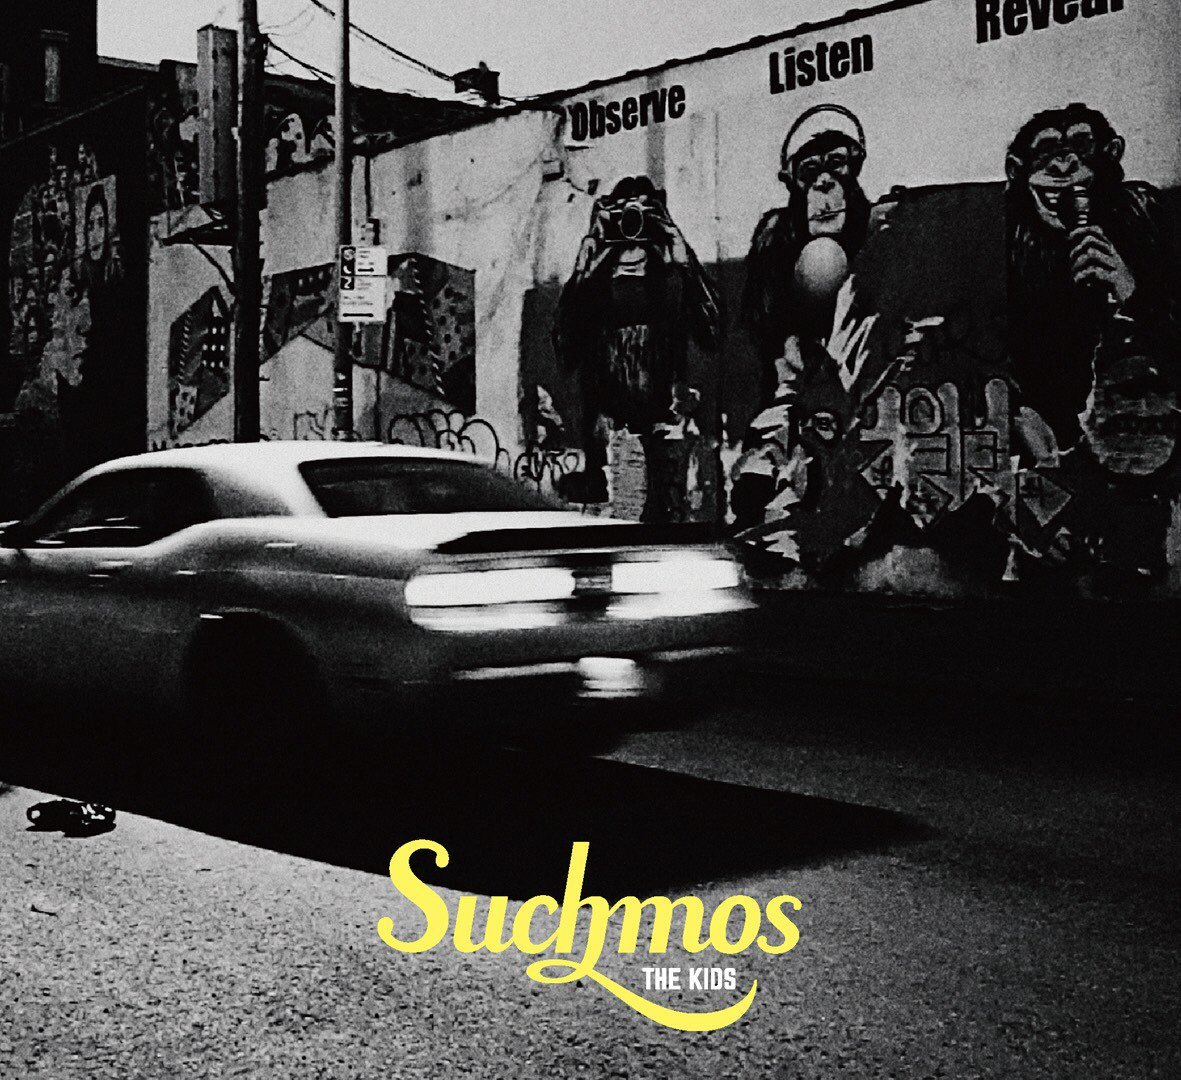 Download Suchmos - THE KIDS (2017), FLAC 24-96 - SoftArchive